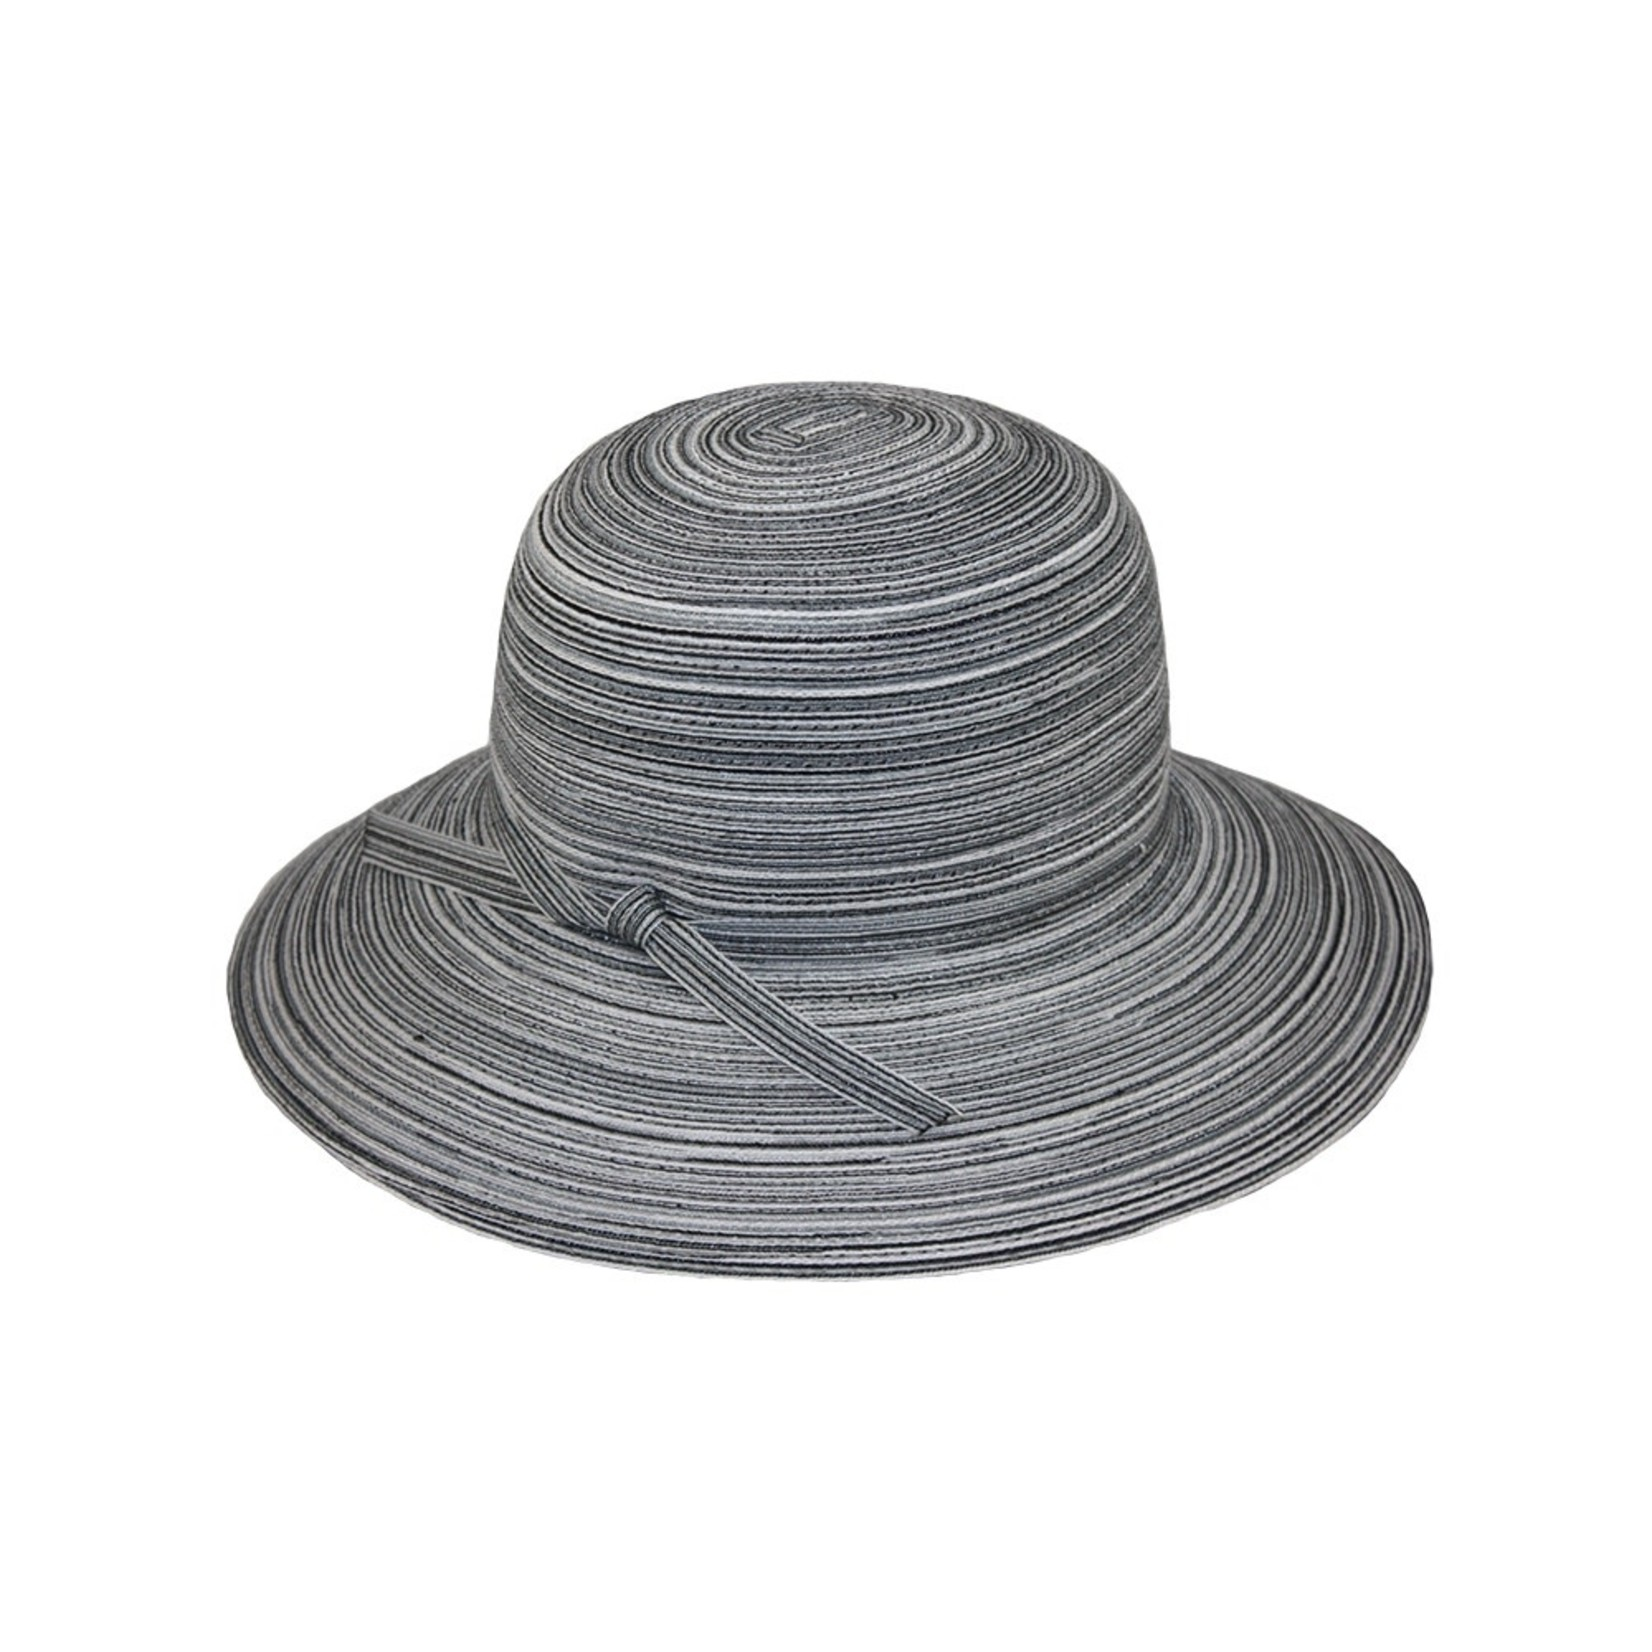 Jeanne Simmons Black and White Large Brim Bucket Hat